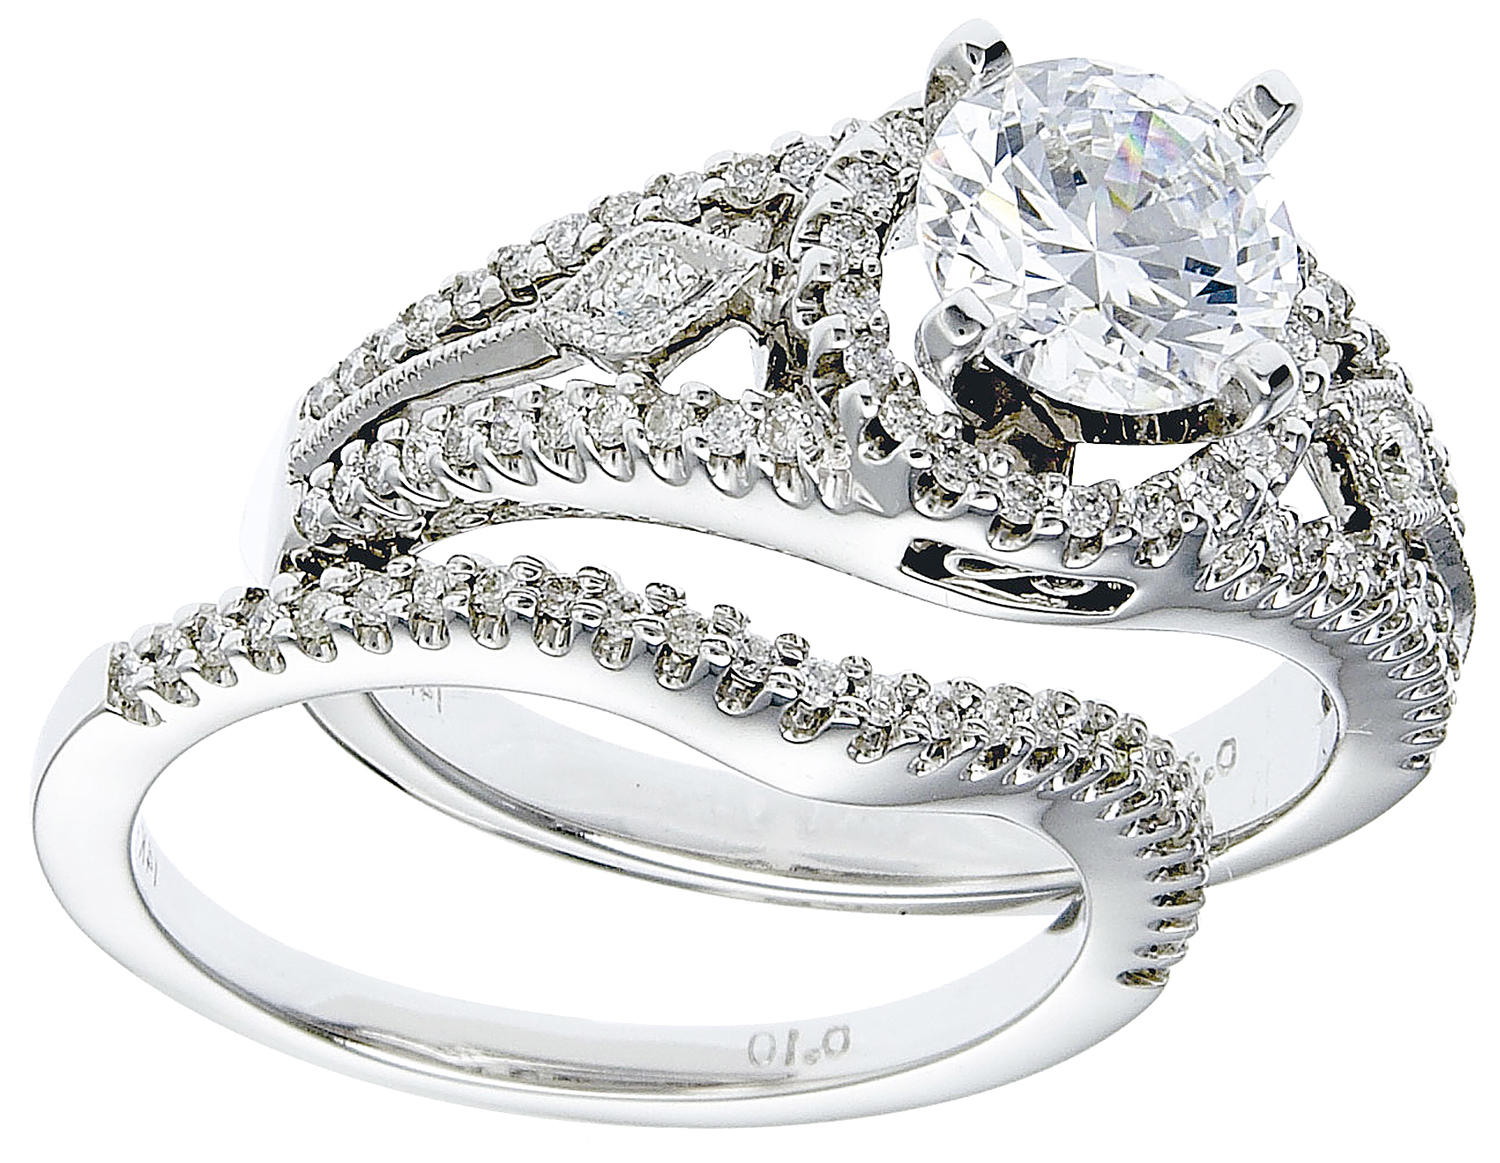 2545dee69 RWG151 Diamond Engagement Ring Set, 14K White Gold With Diamonds